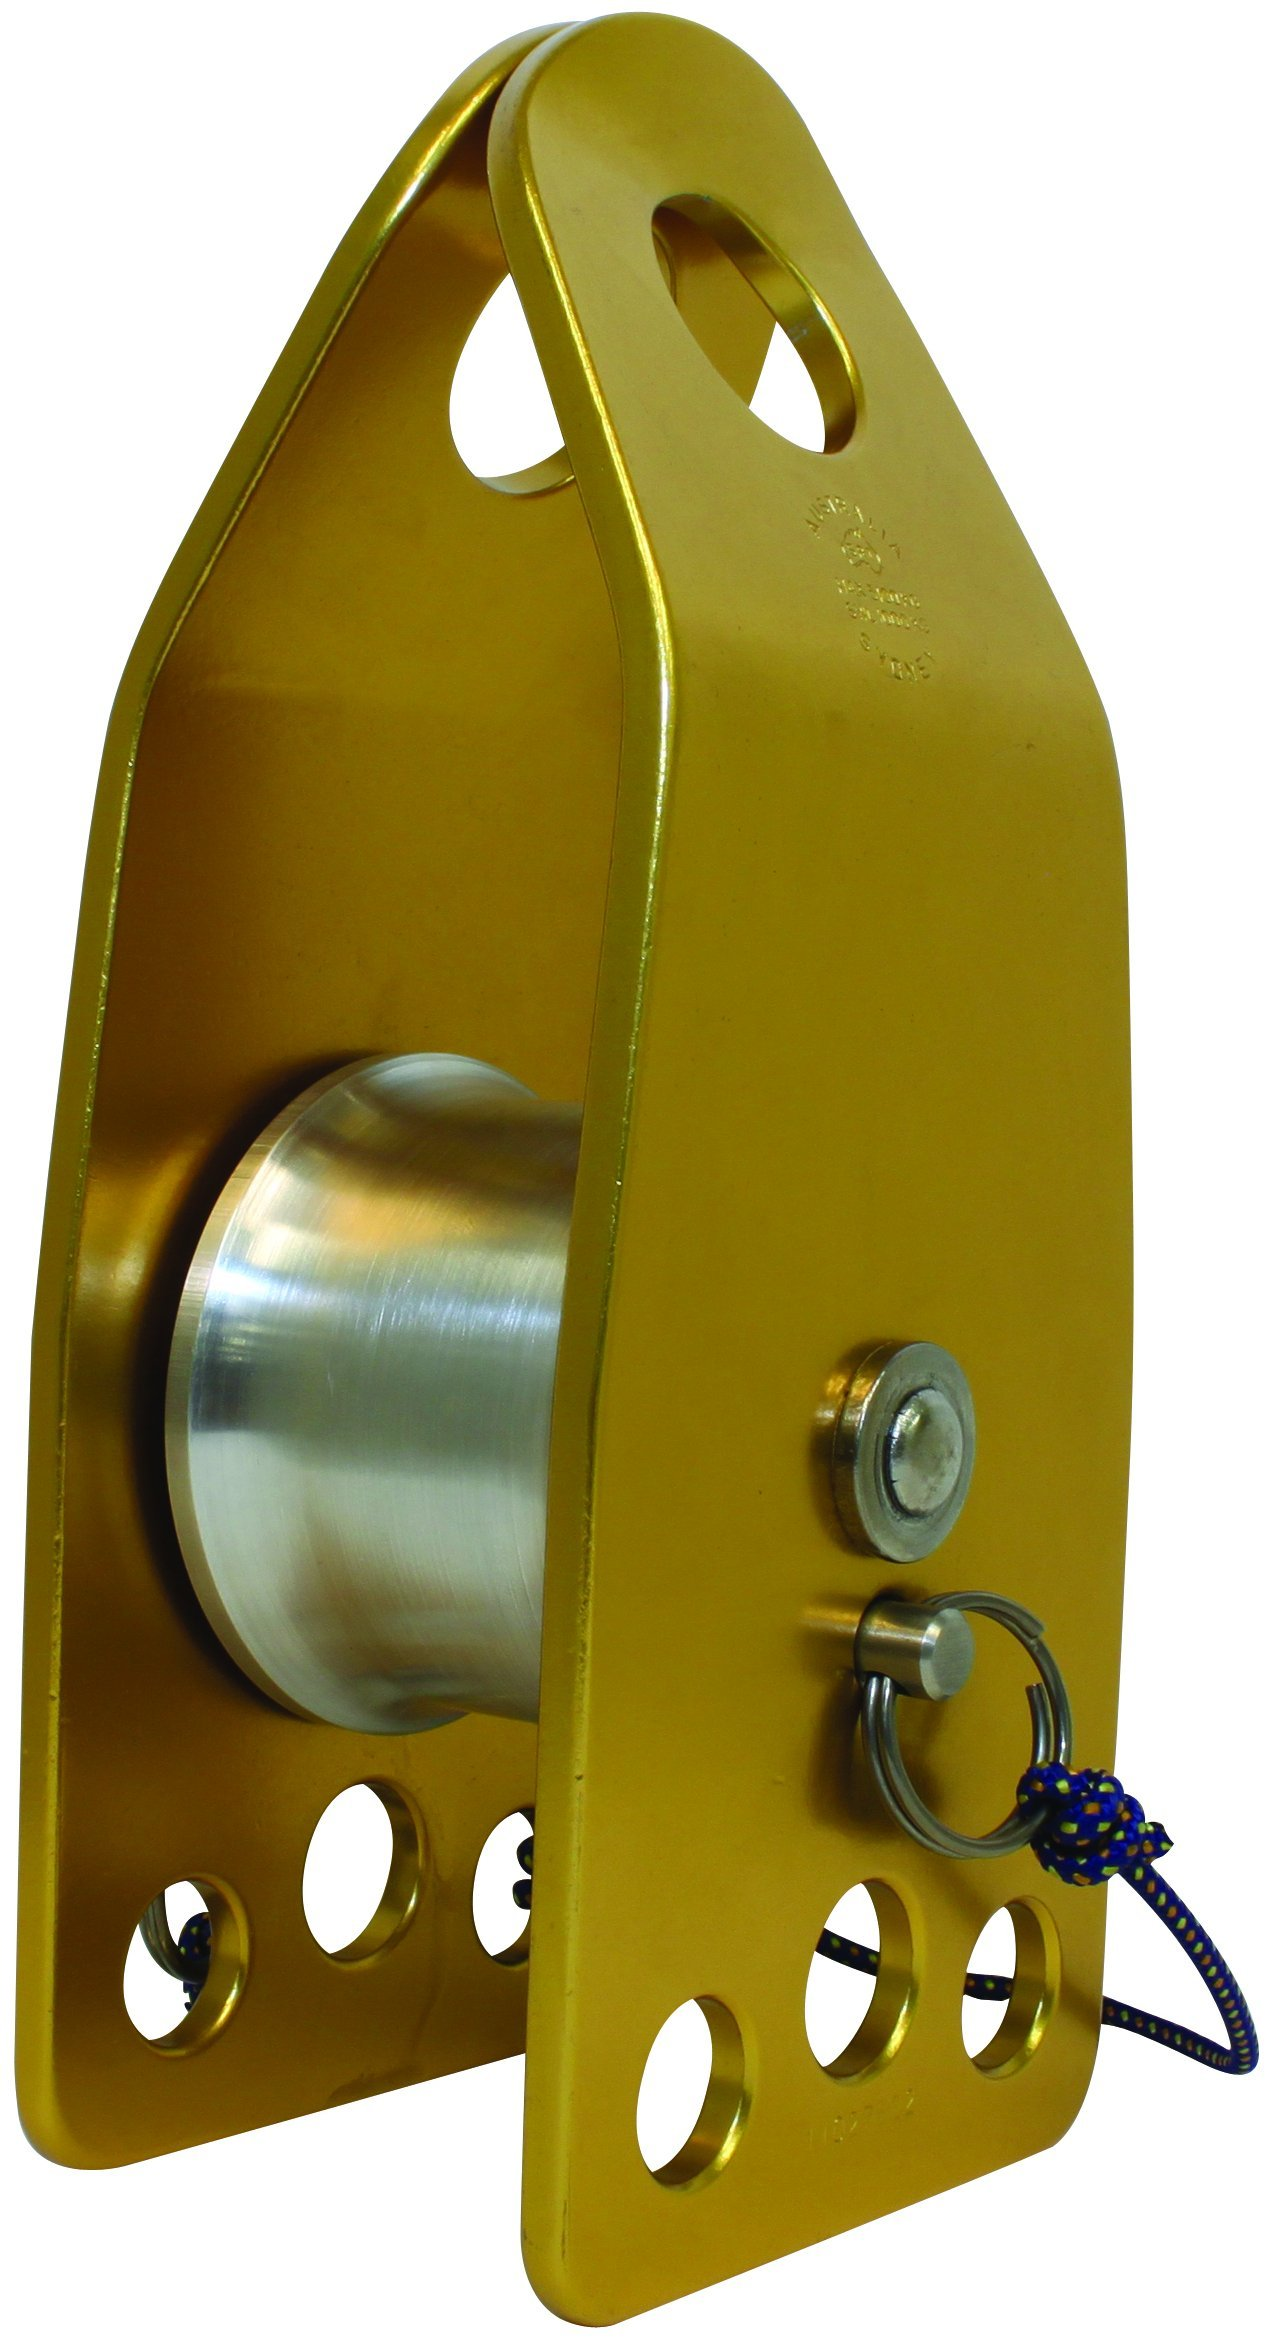 3M DBI-SALA Rollgliss Technical Rescue 8700039 Single Wide Sheave, 80Mm Diameter Knot Passing Pulley, Aluminum, 3'' Diameter, Fits Rope 7/16''-3'', Gold/Silver